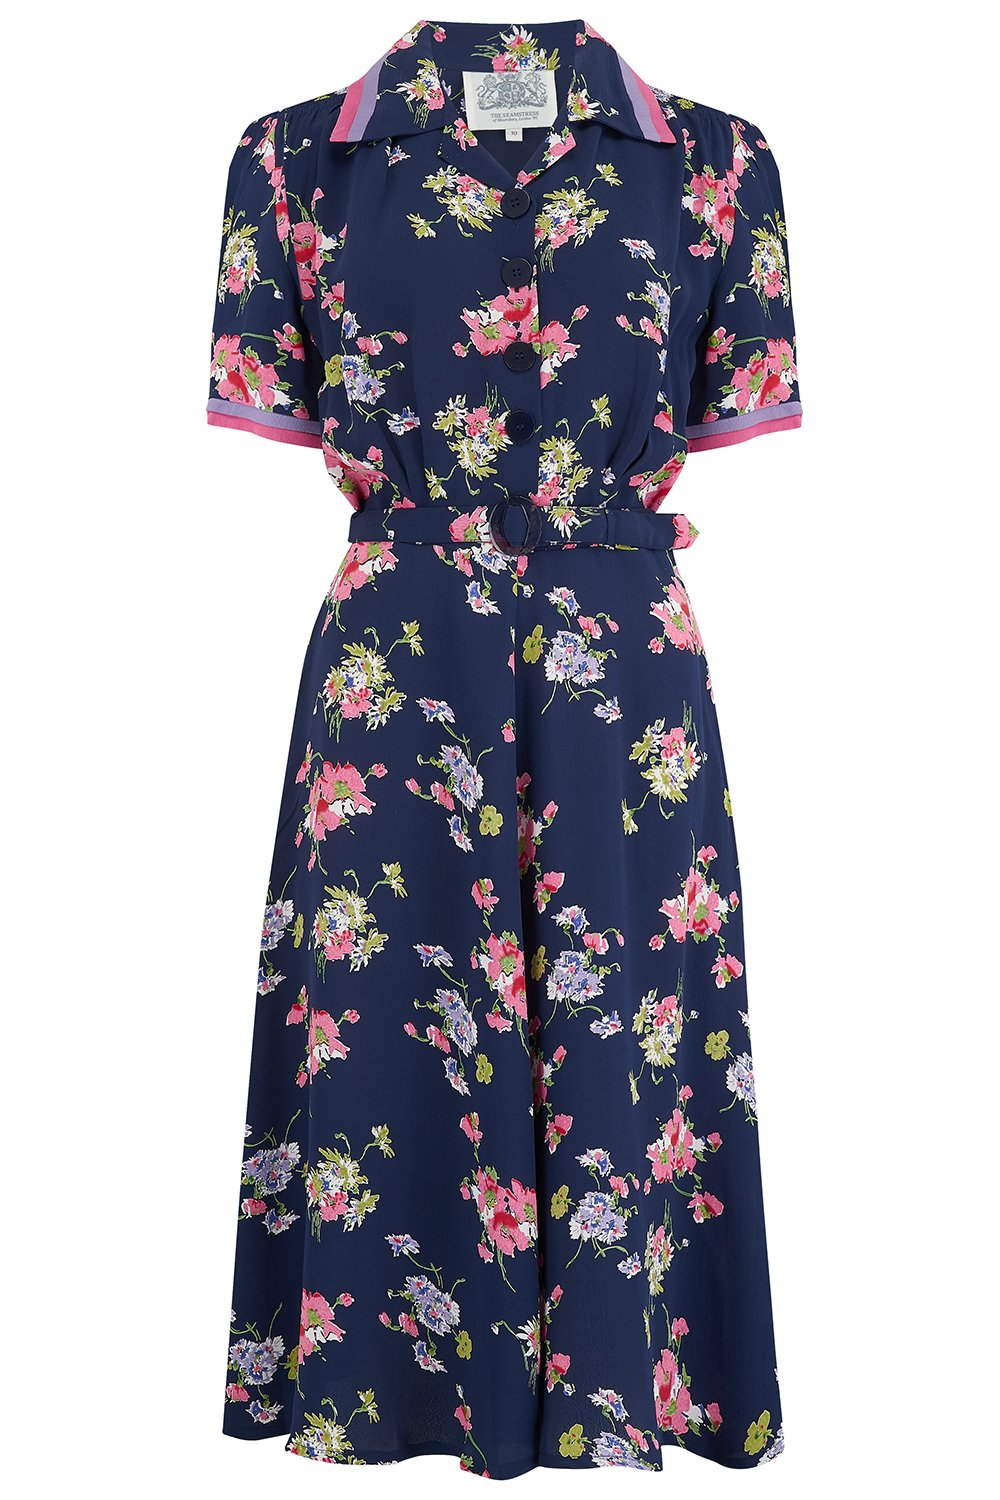 1940s Dresses and Clothing UK | 40s Shoes UK Roma Dress in  Navy Blue Mayflower Authentic  Classic 1940s Vintage Inspired Style £79.01 AT vintagedancer.com